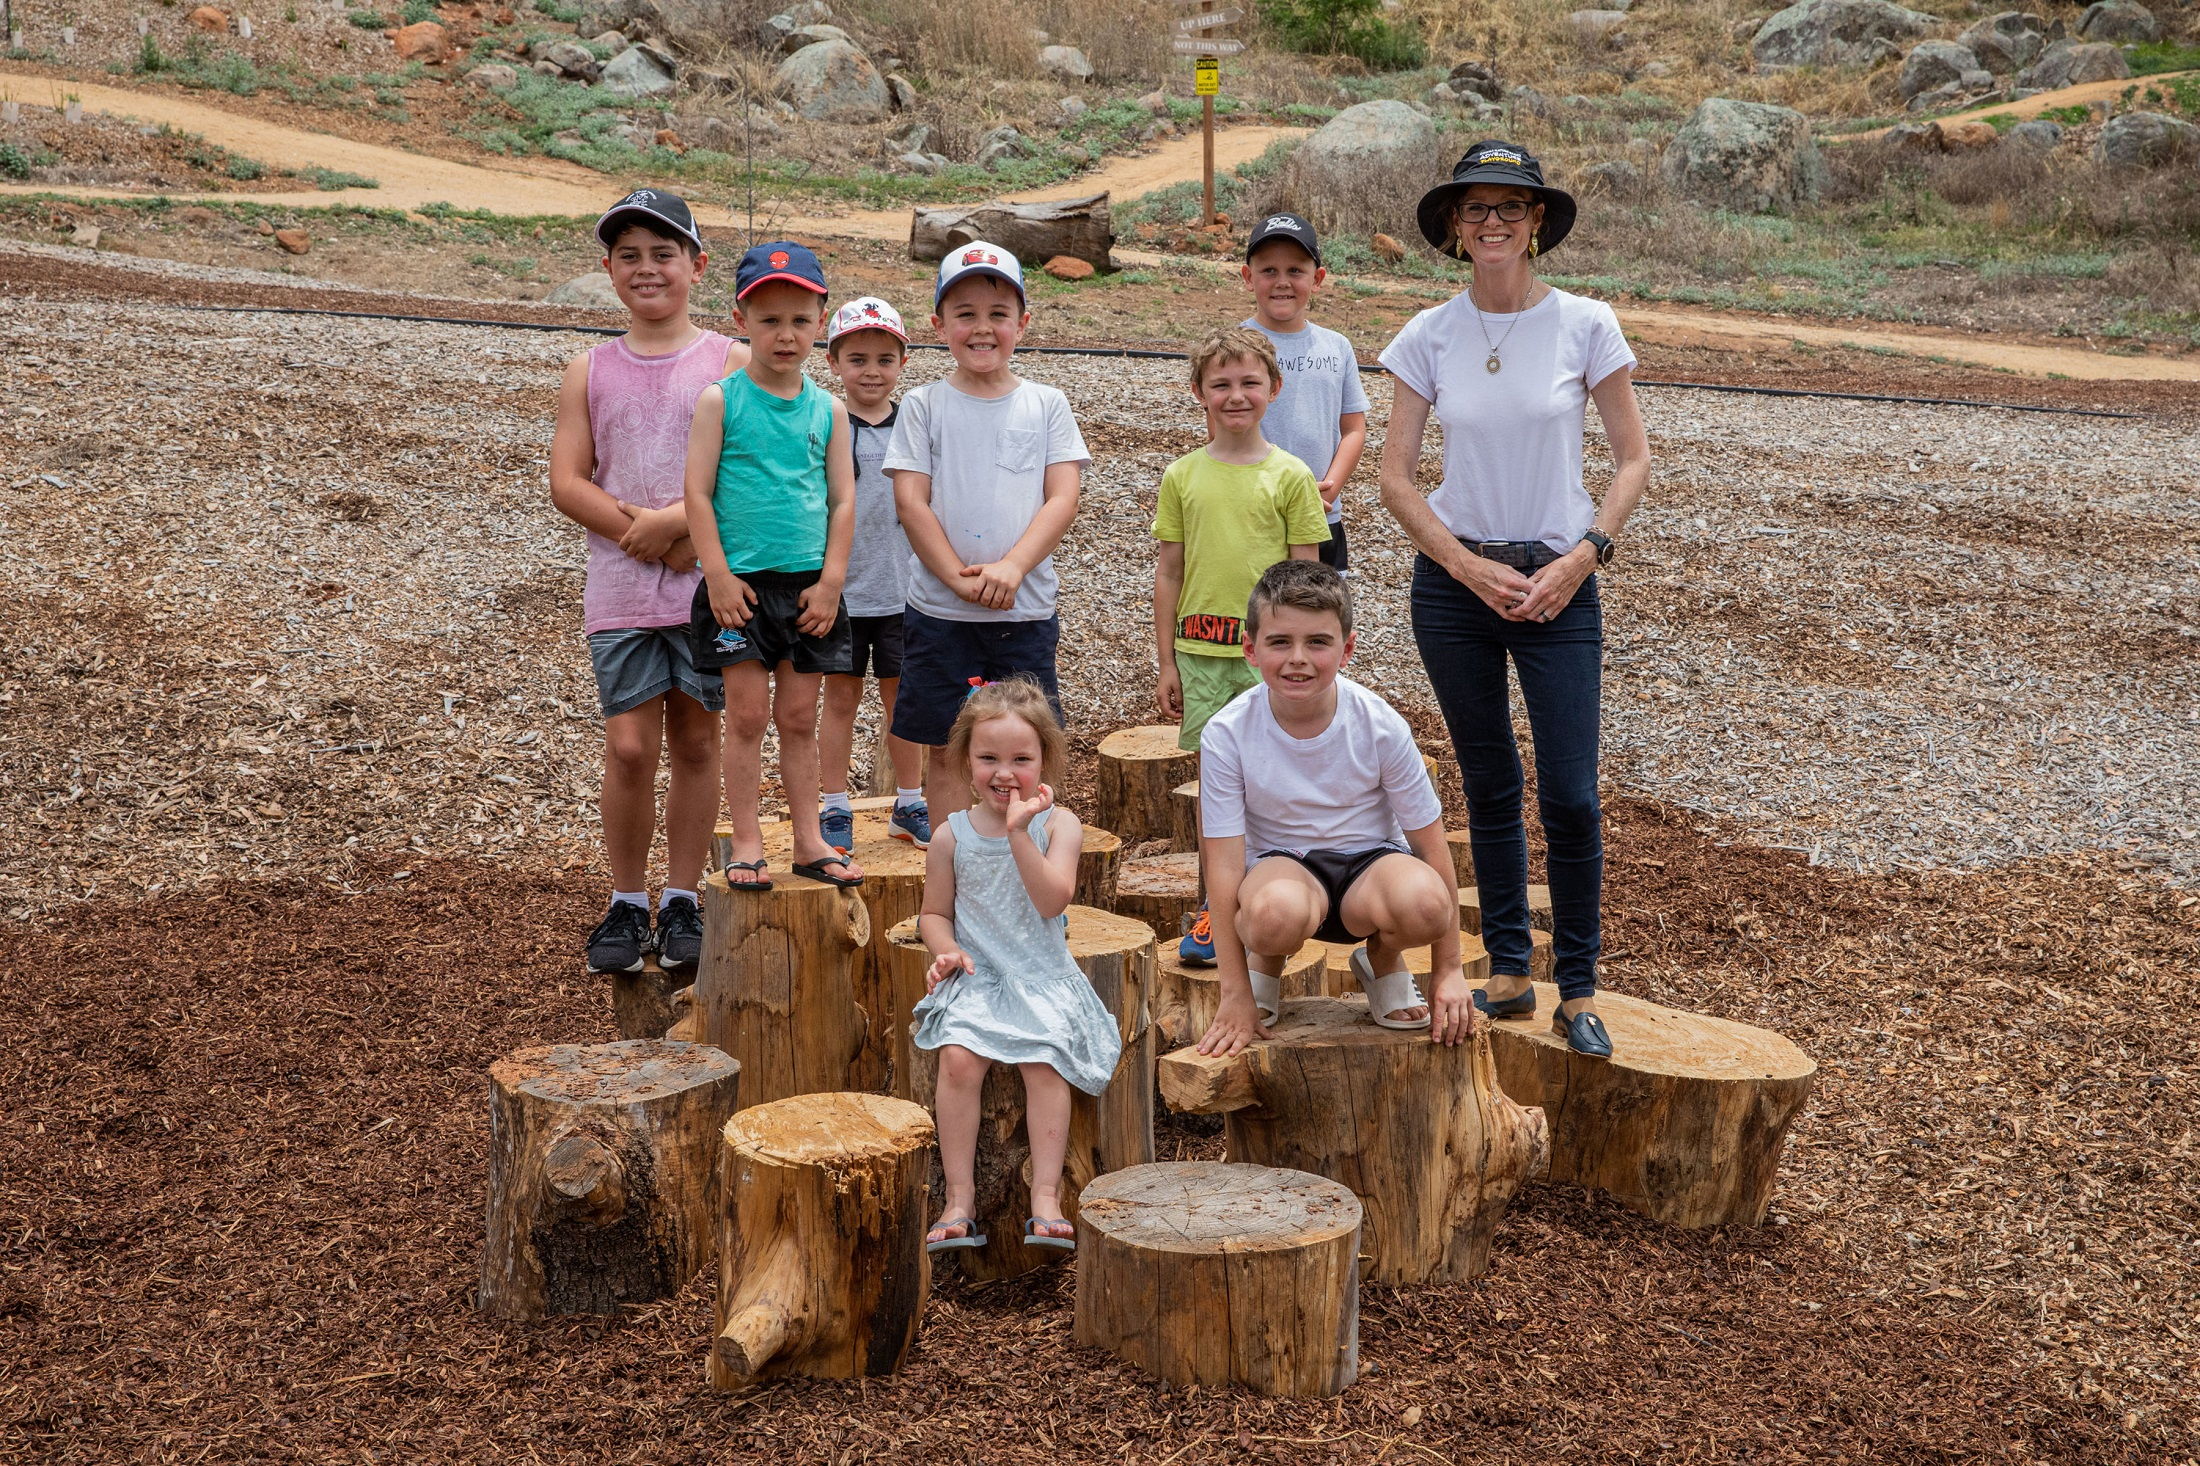 Eight young children and Steph Cooke stand on timber stumps arranged together.